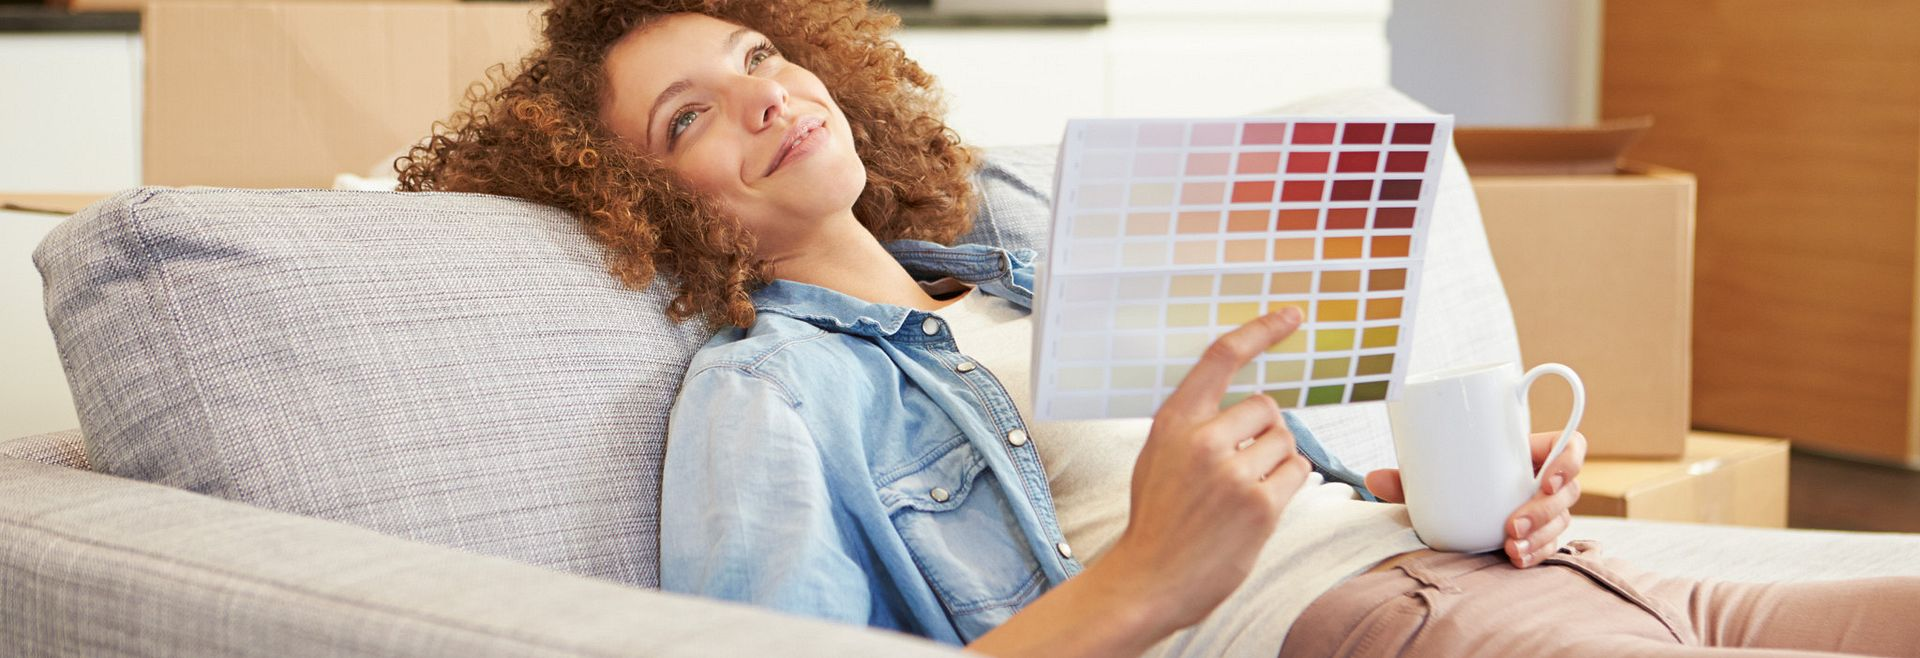 Woman Laying on Couch With Color Book